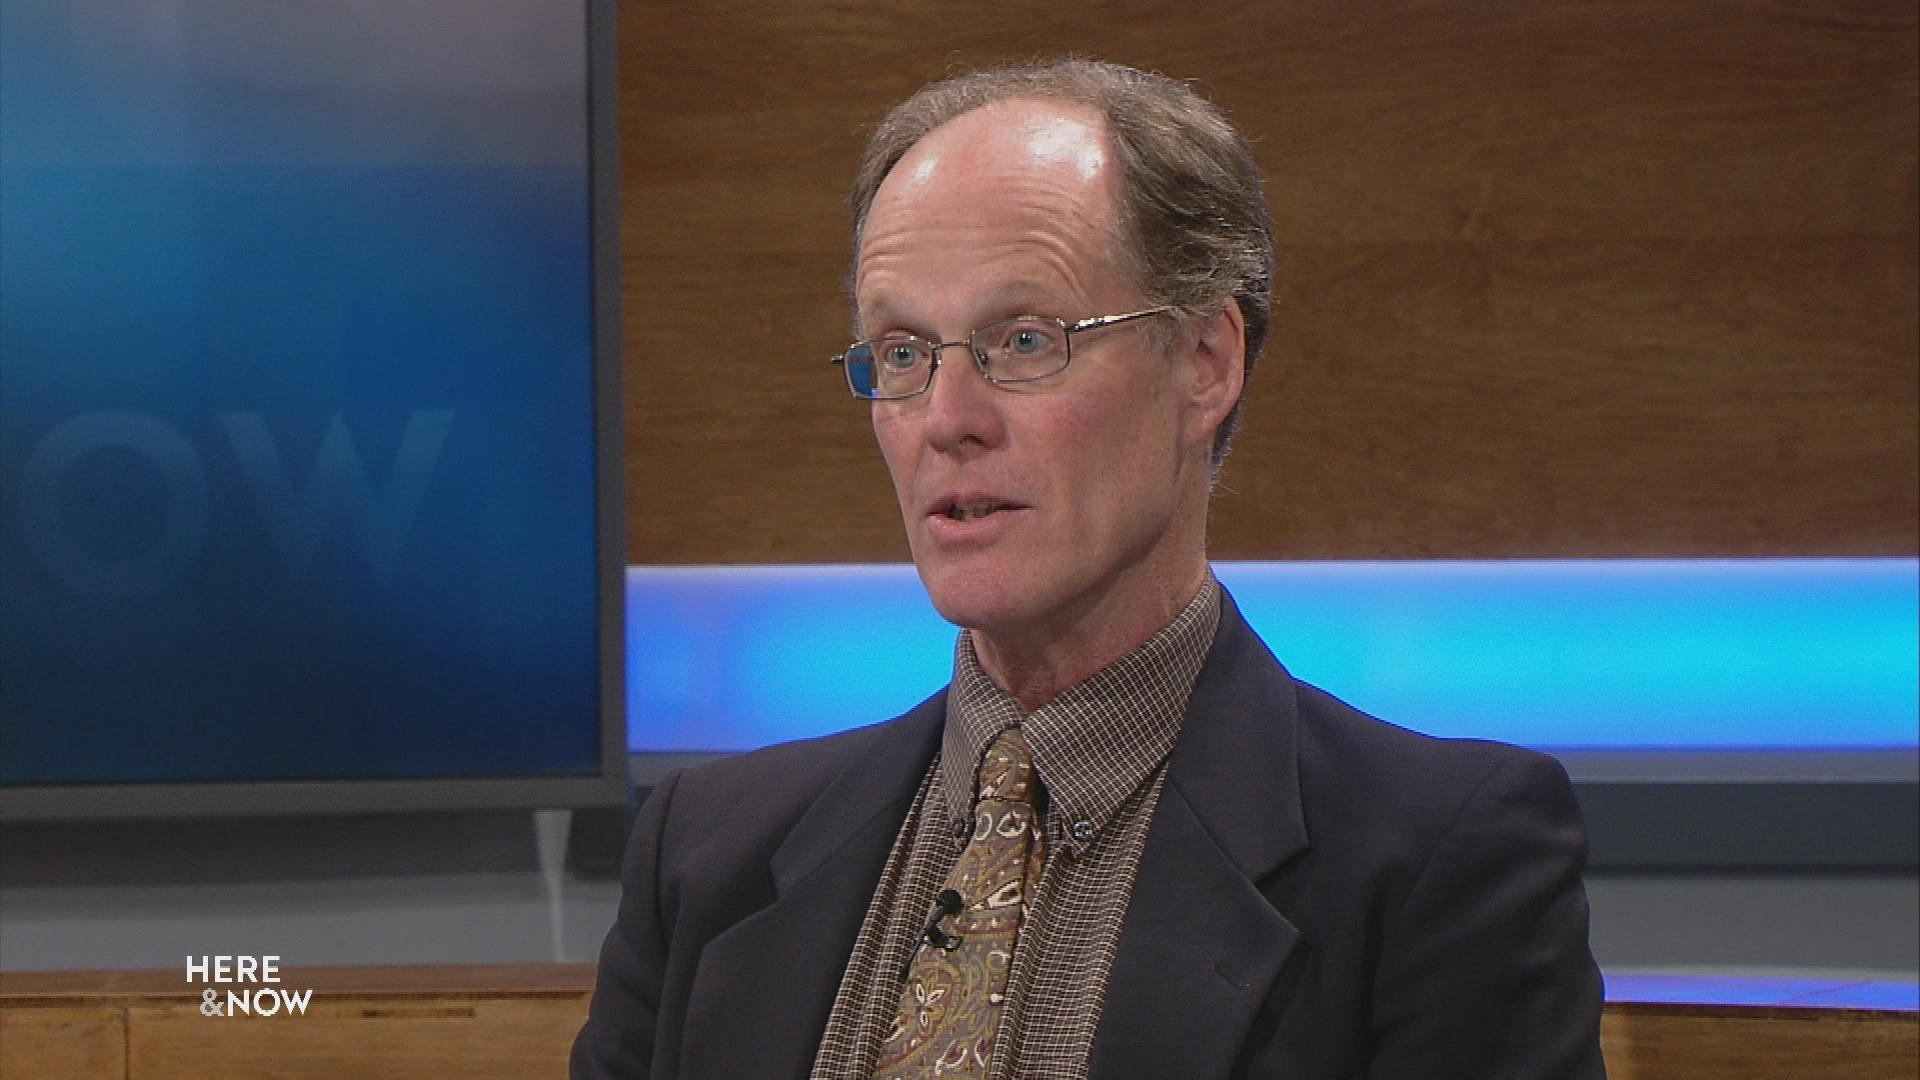 UW Political Scientist on the Process of Impeachment